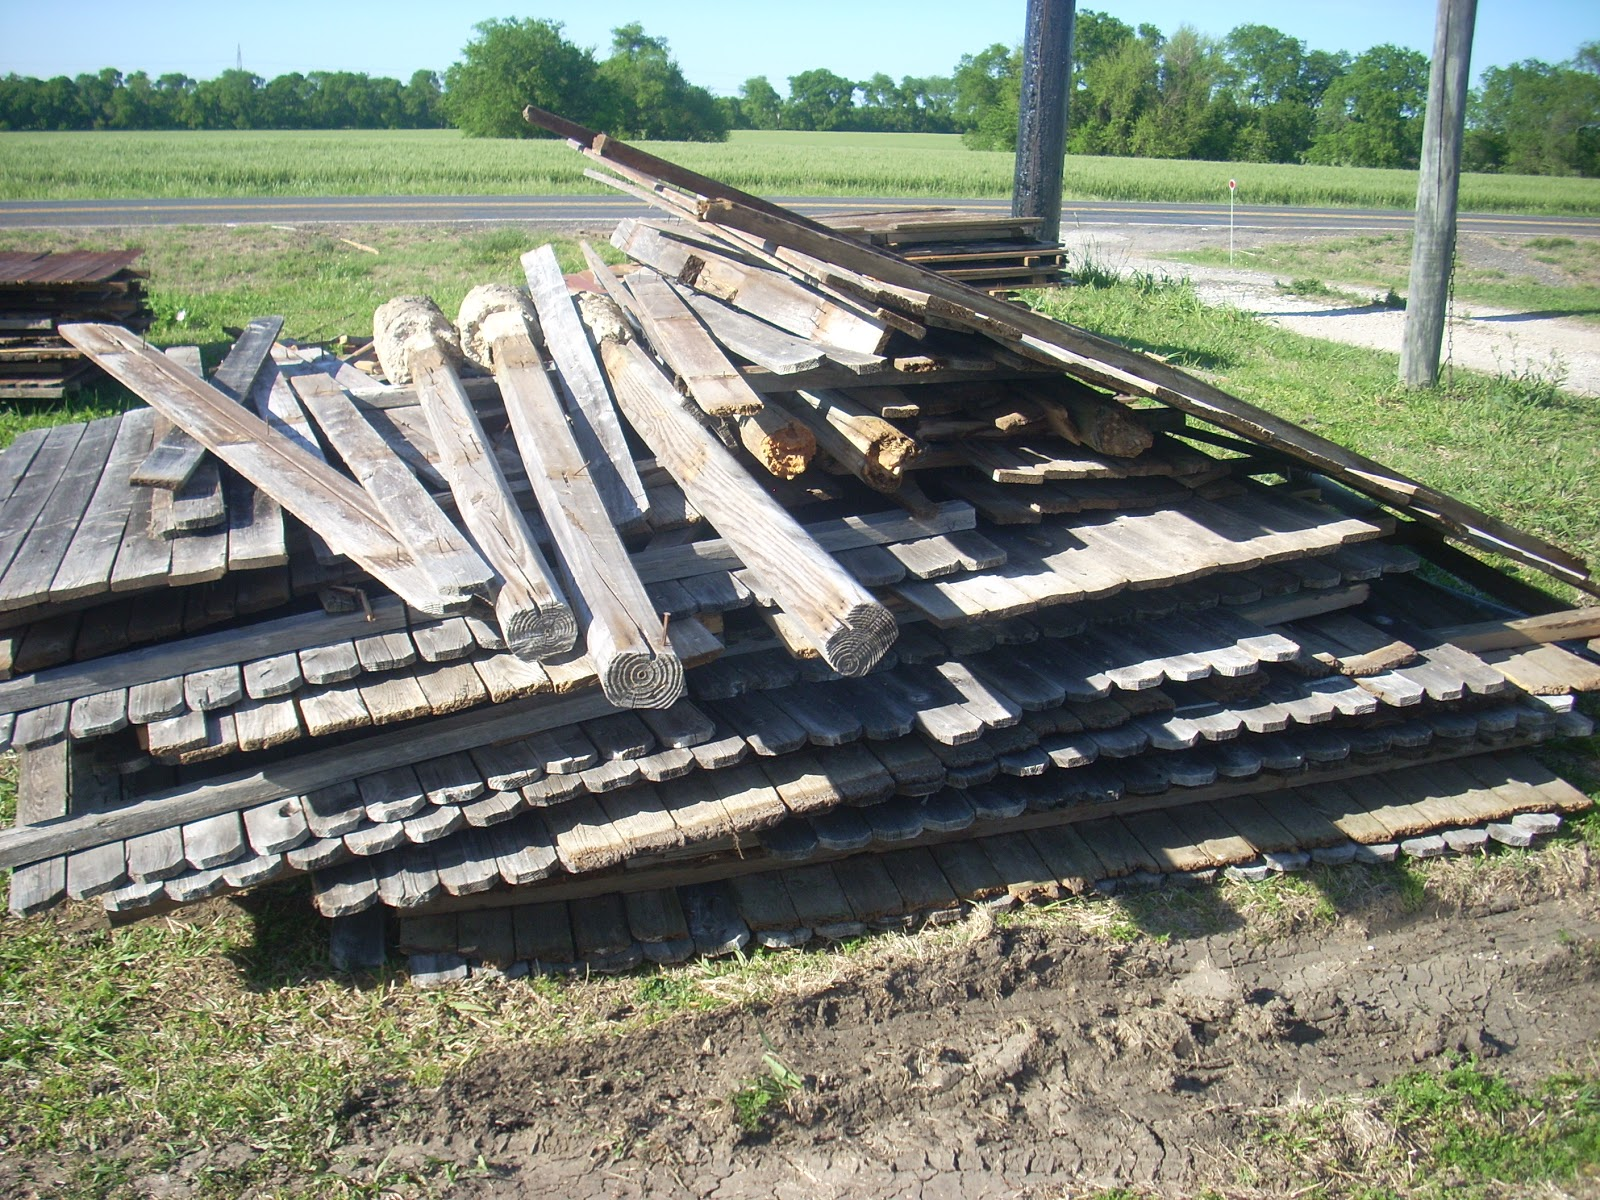 Marvelous photograph of Road Wood Fence Panels & Pickets Wylie Texas: GONE Complete Fence  with #698249 color and 1600x1200 pixels